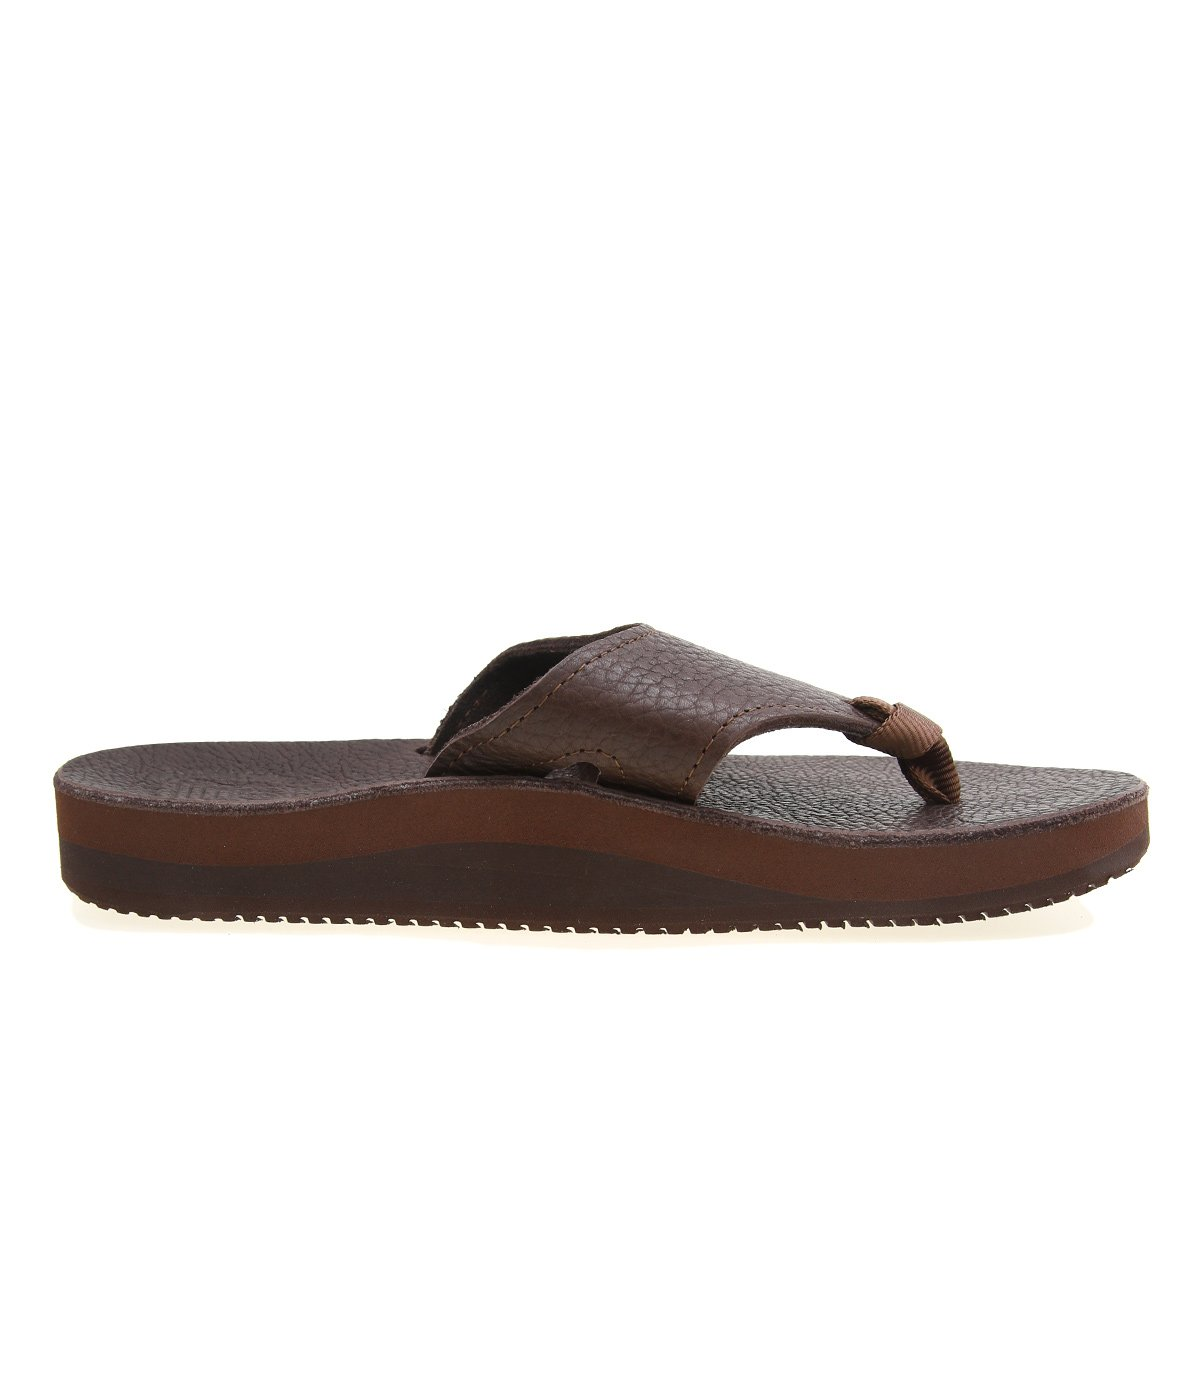 BEACH WIDE VIBRAMS(2070 SCOOTER)